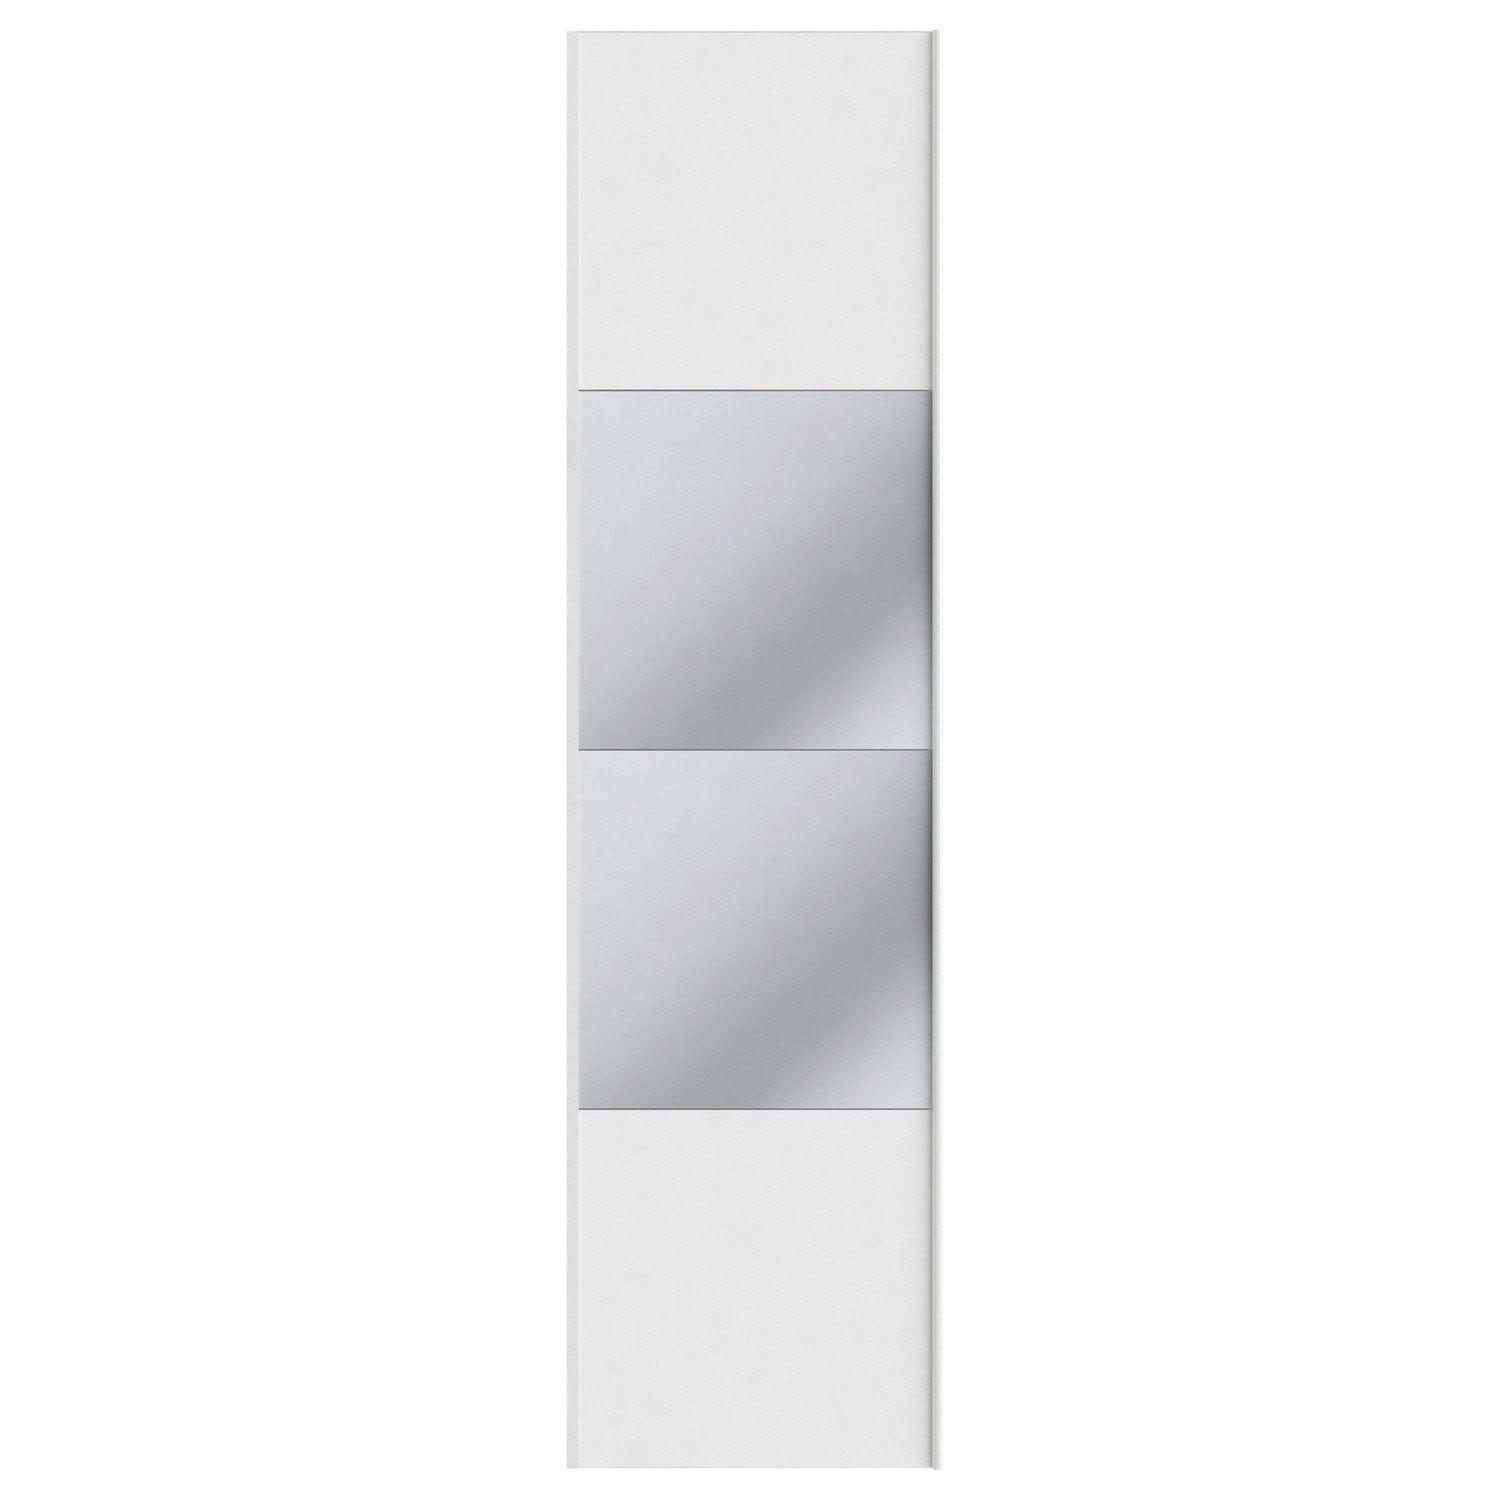 Portes Coulissantes Spaceo Home 240 X 60 X 1 6 Cm Blanc